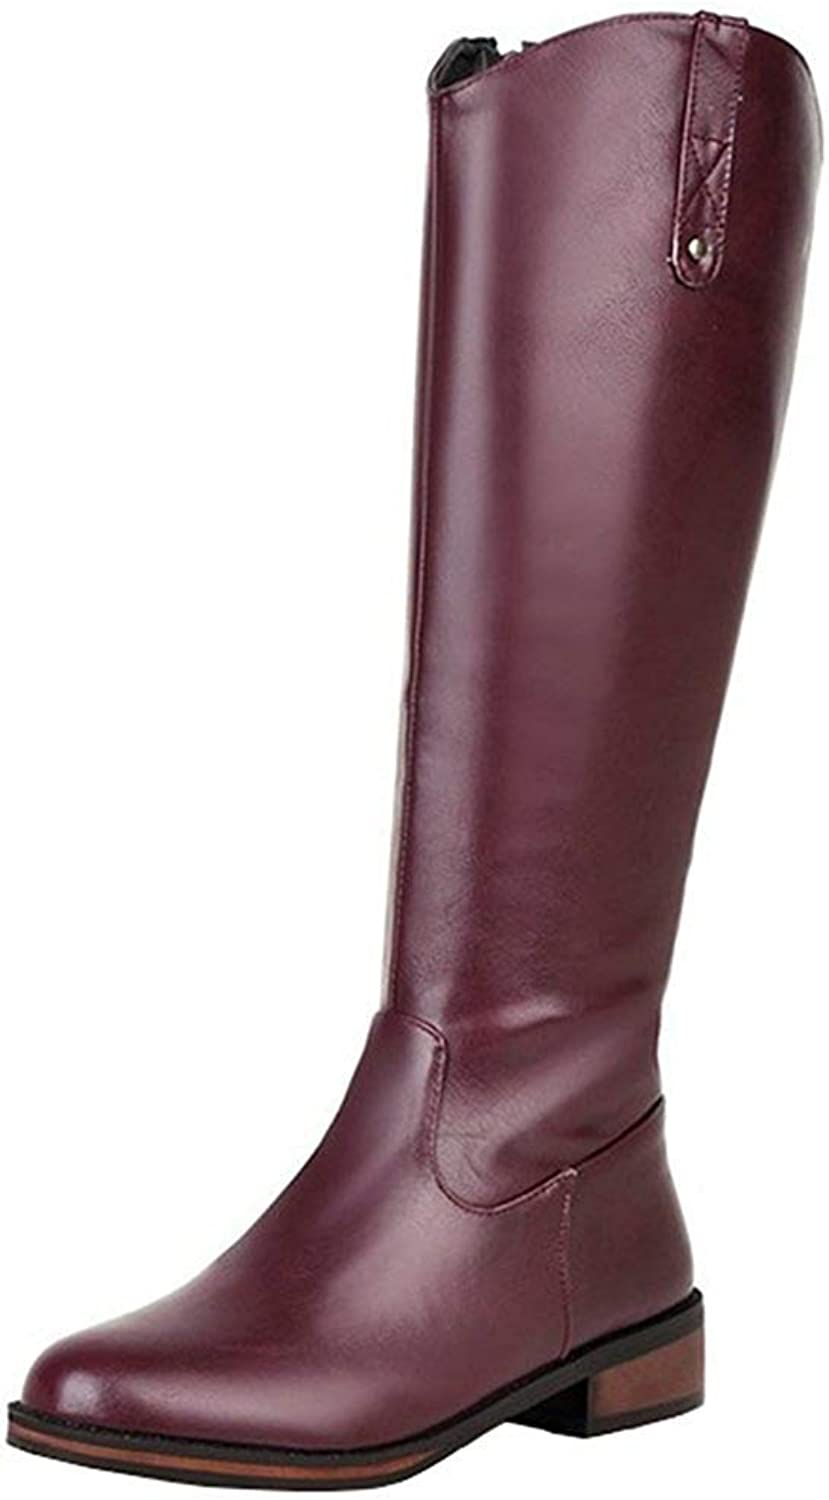 Lelehwhge Women's Stylish Burnished Block Low Heel Round Toe Side Zipper Knee High Riding Boots Red 8 M US